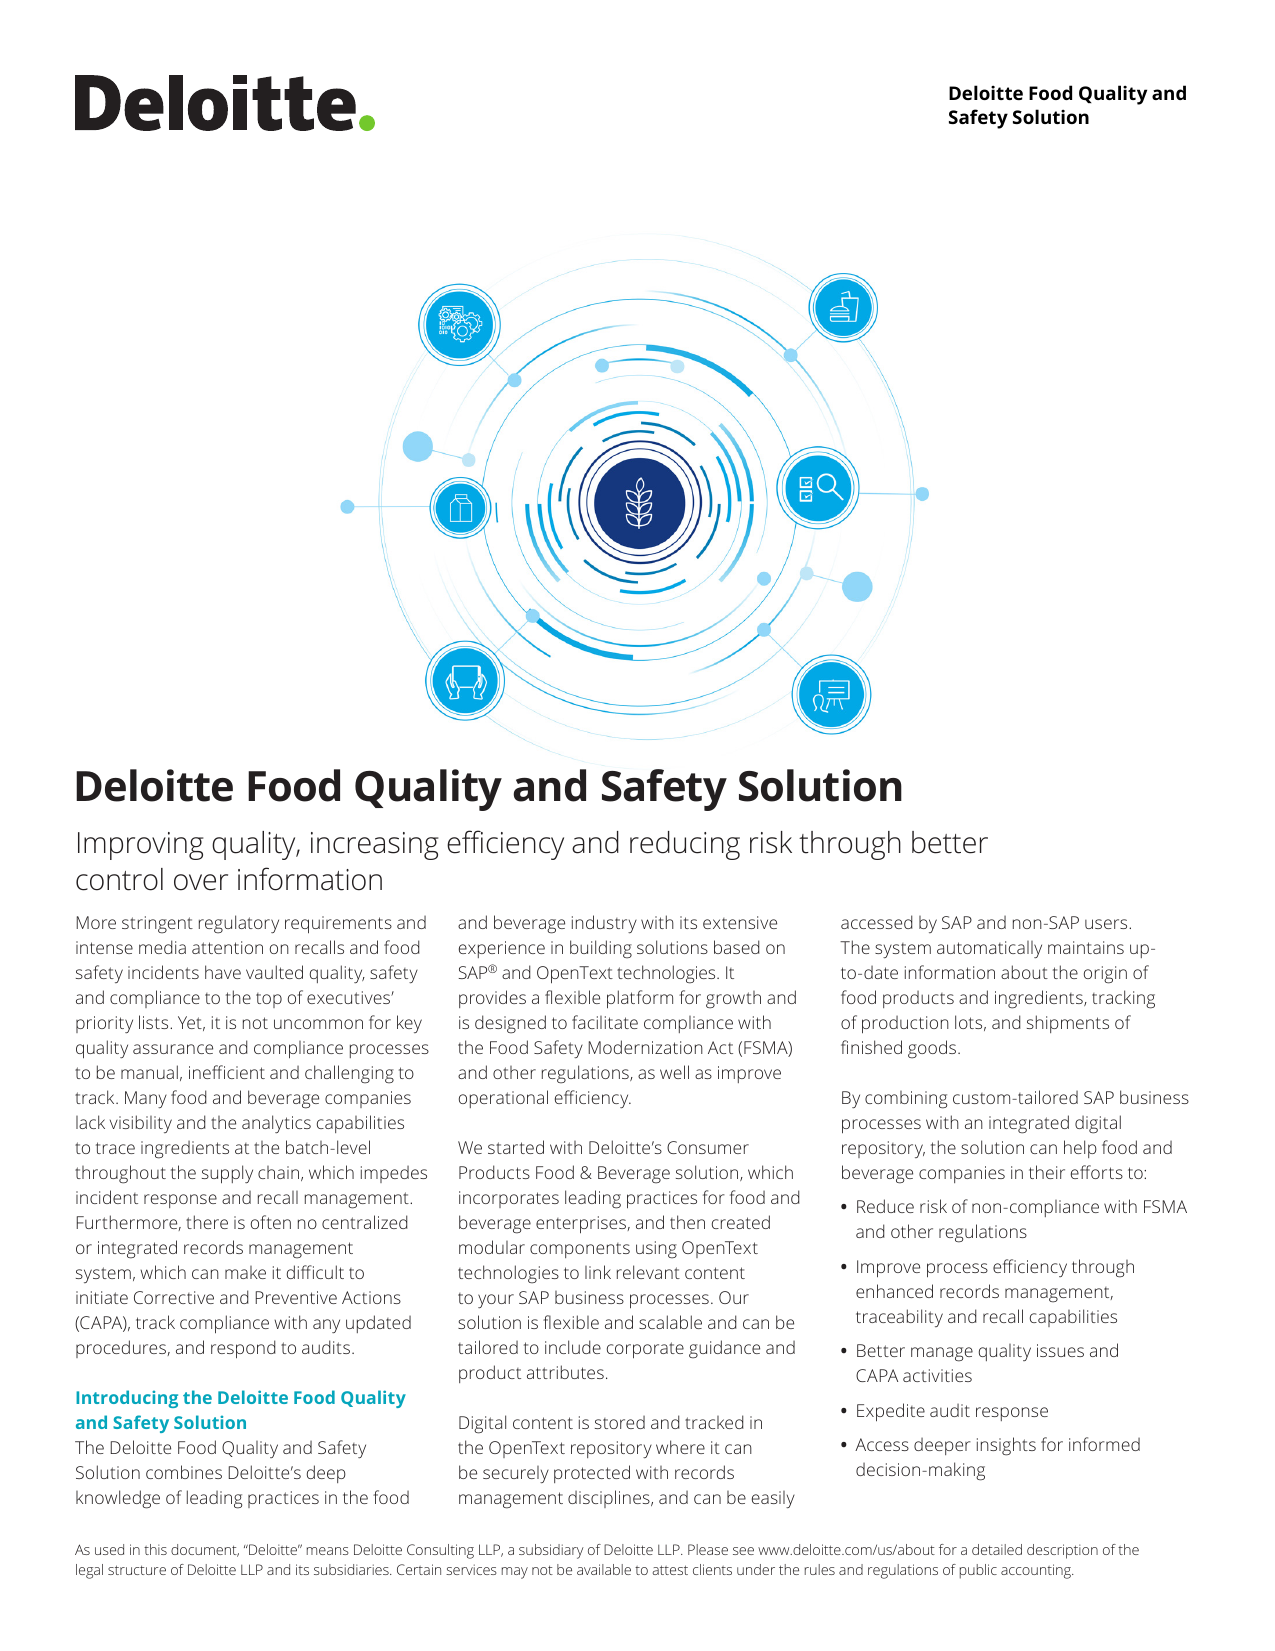 Deloitte Food Quality and Safety Solution